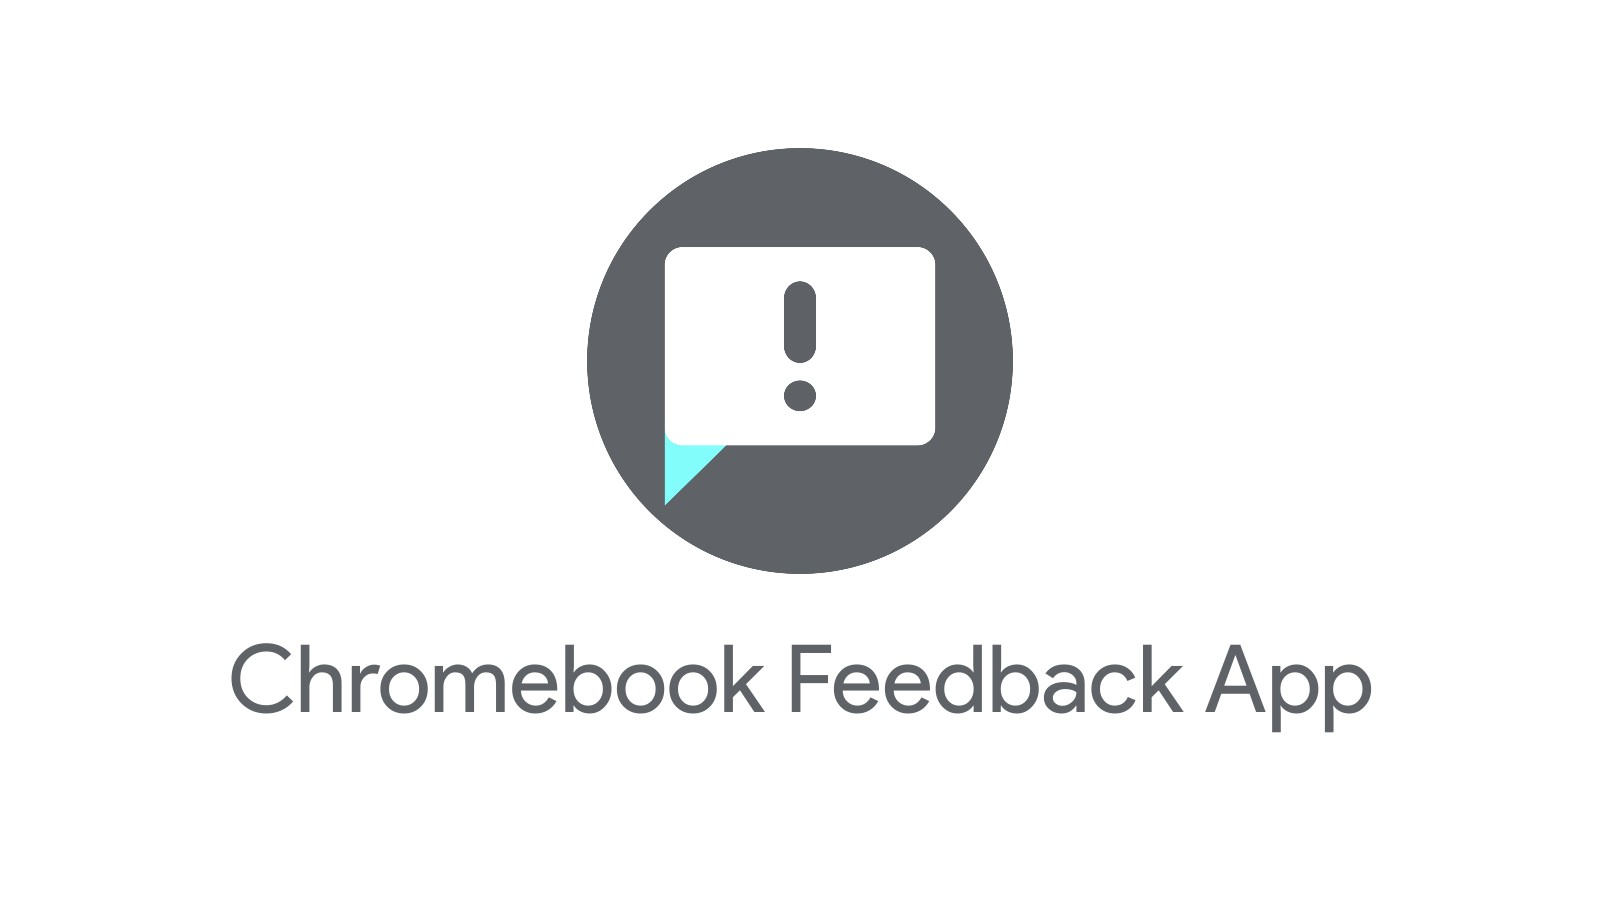 New feedback app for Chromebooks lets you submit your suggestions for consideration